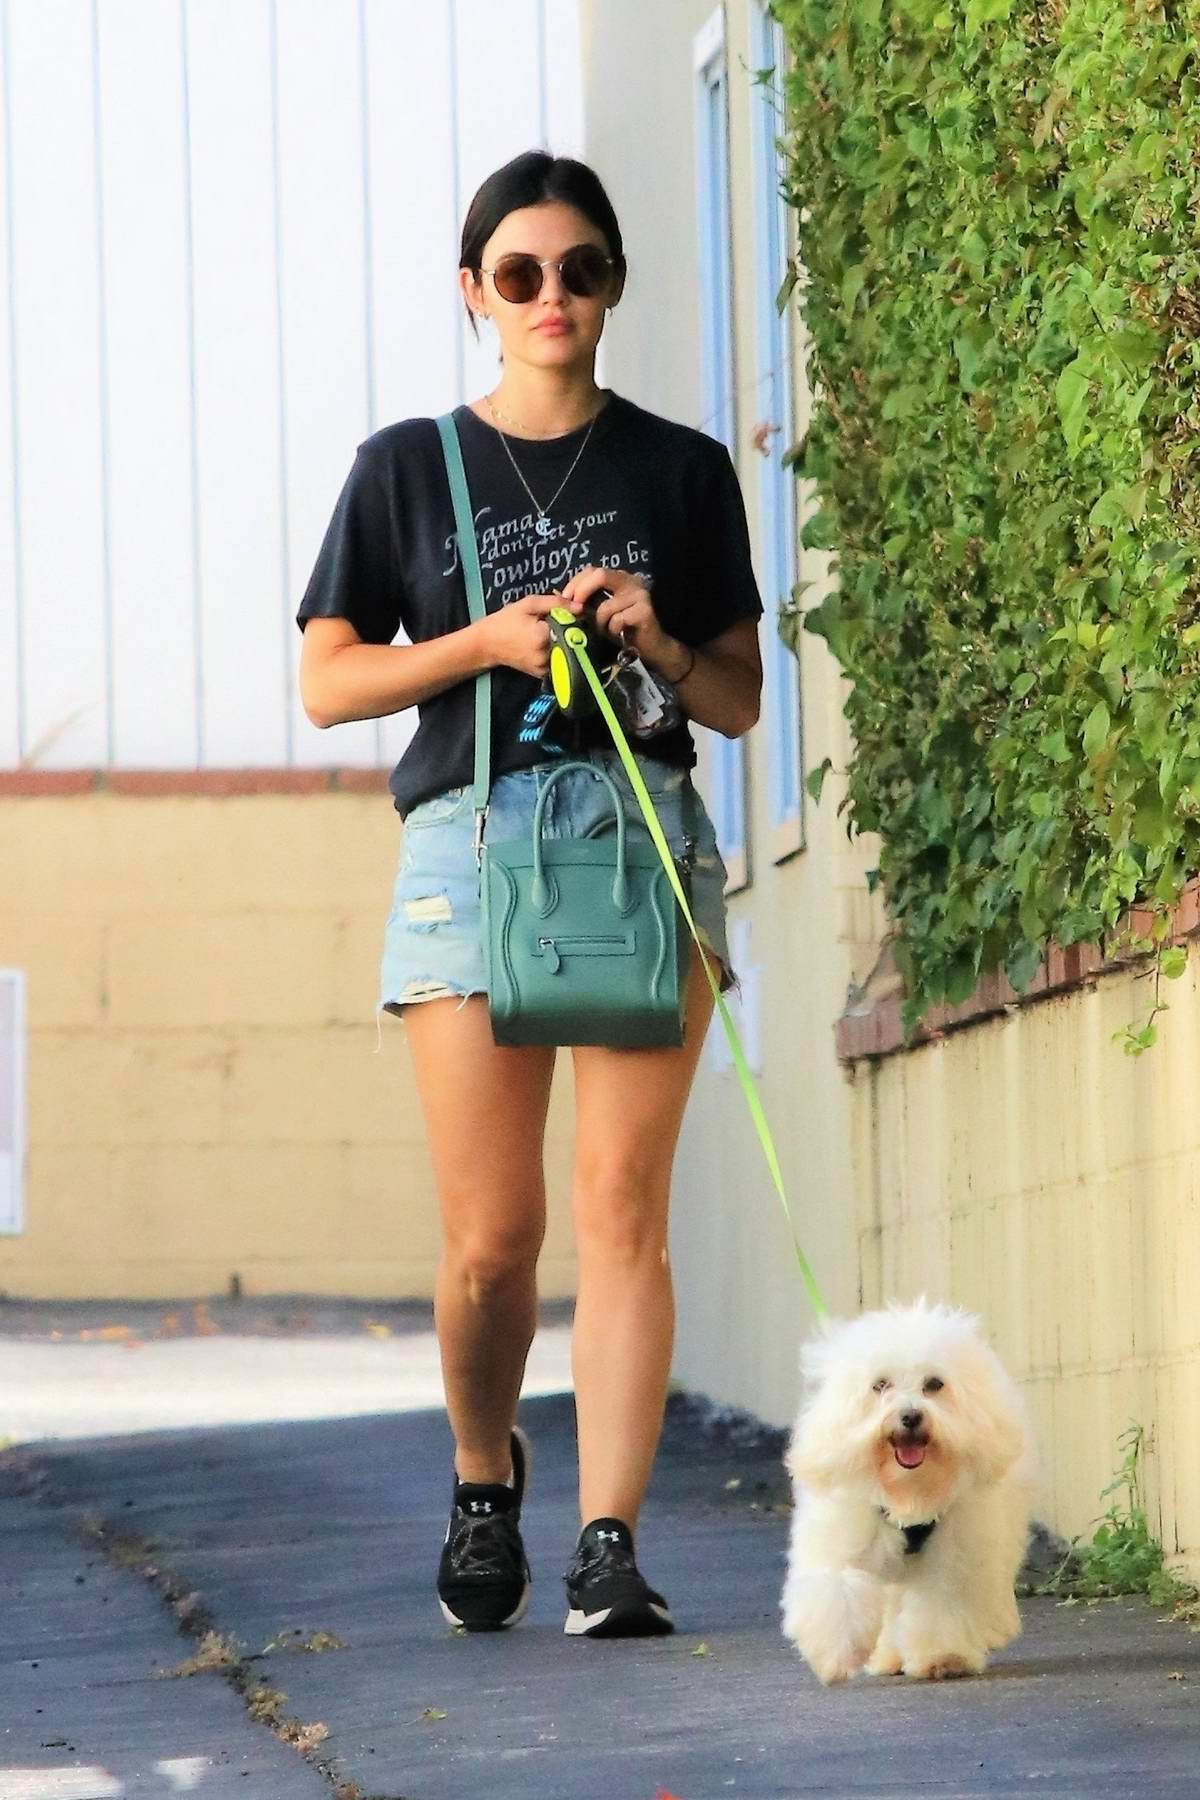 Lucy Hale picks up her dog Elvis from a dog hotel in Studio City, Los Angeles